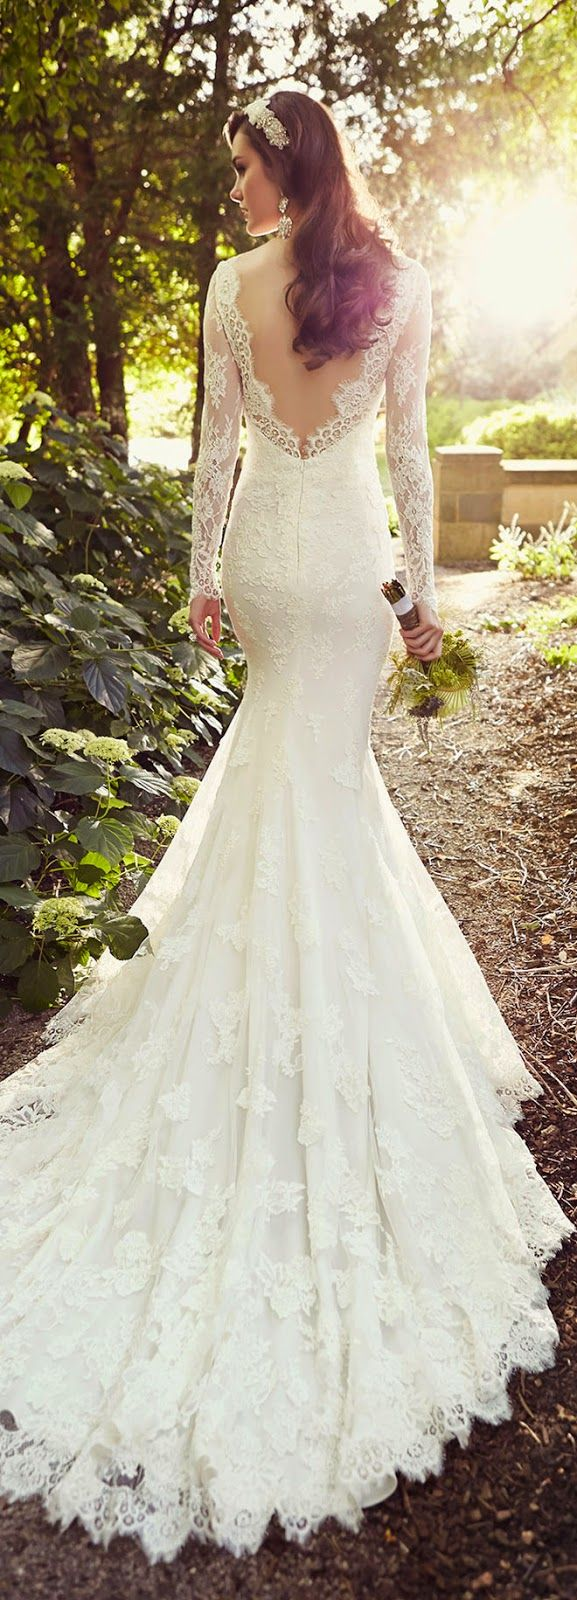 Vintage Lace Wedding Dress For Fall Country